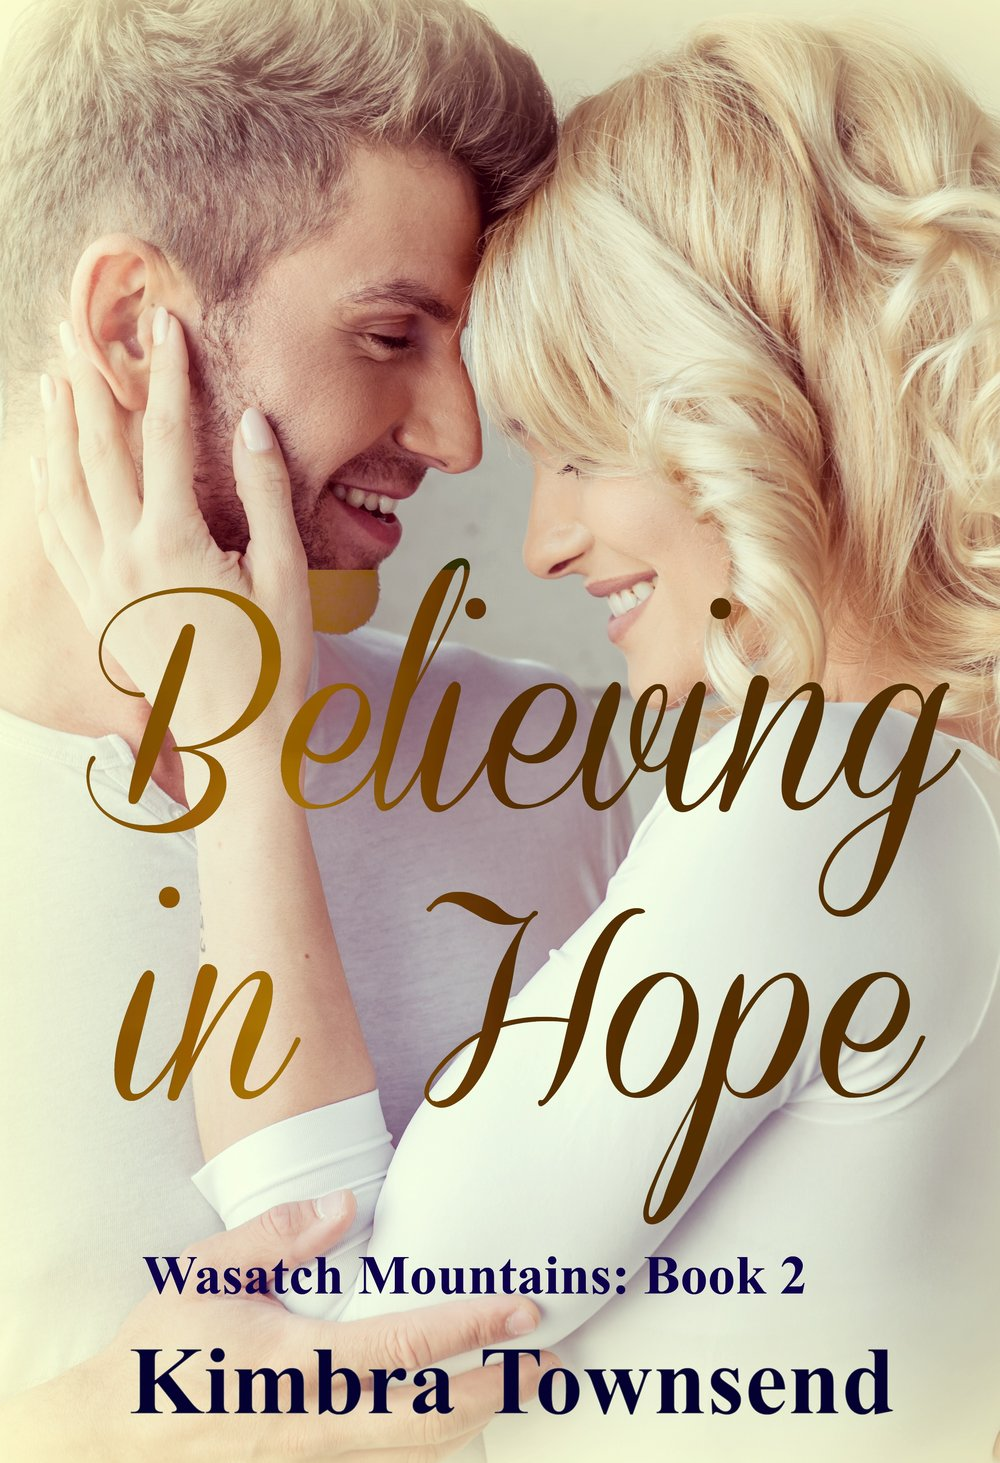 Believing in Hope mockup cover A.jpg